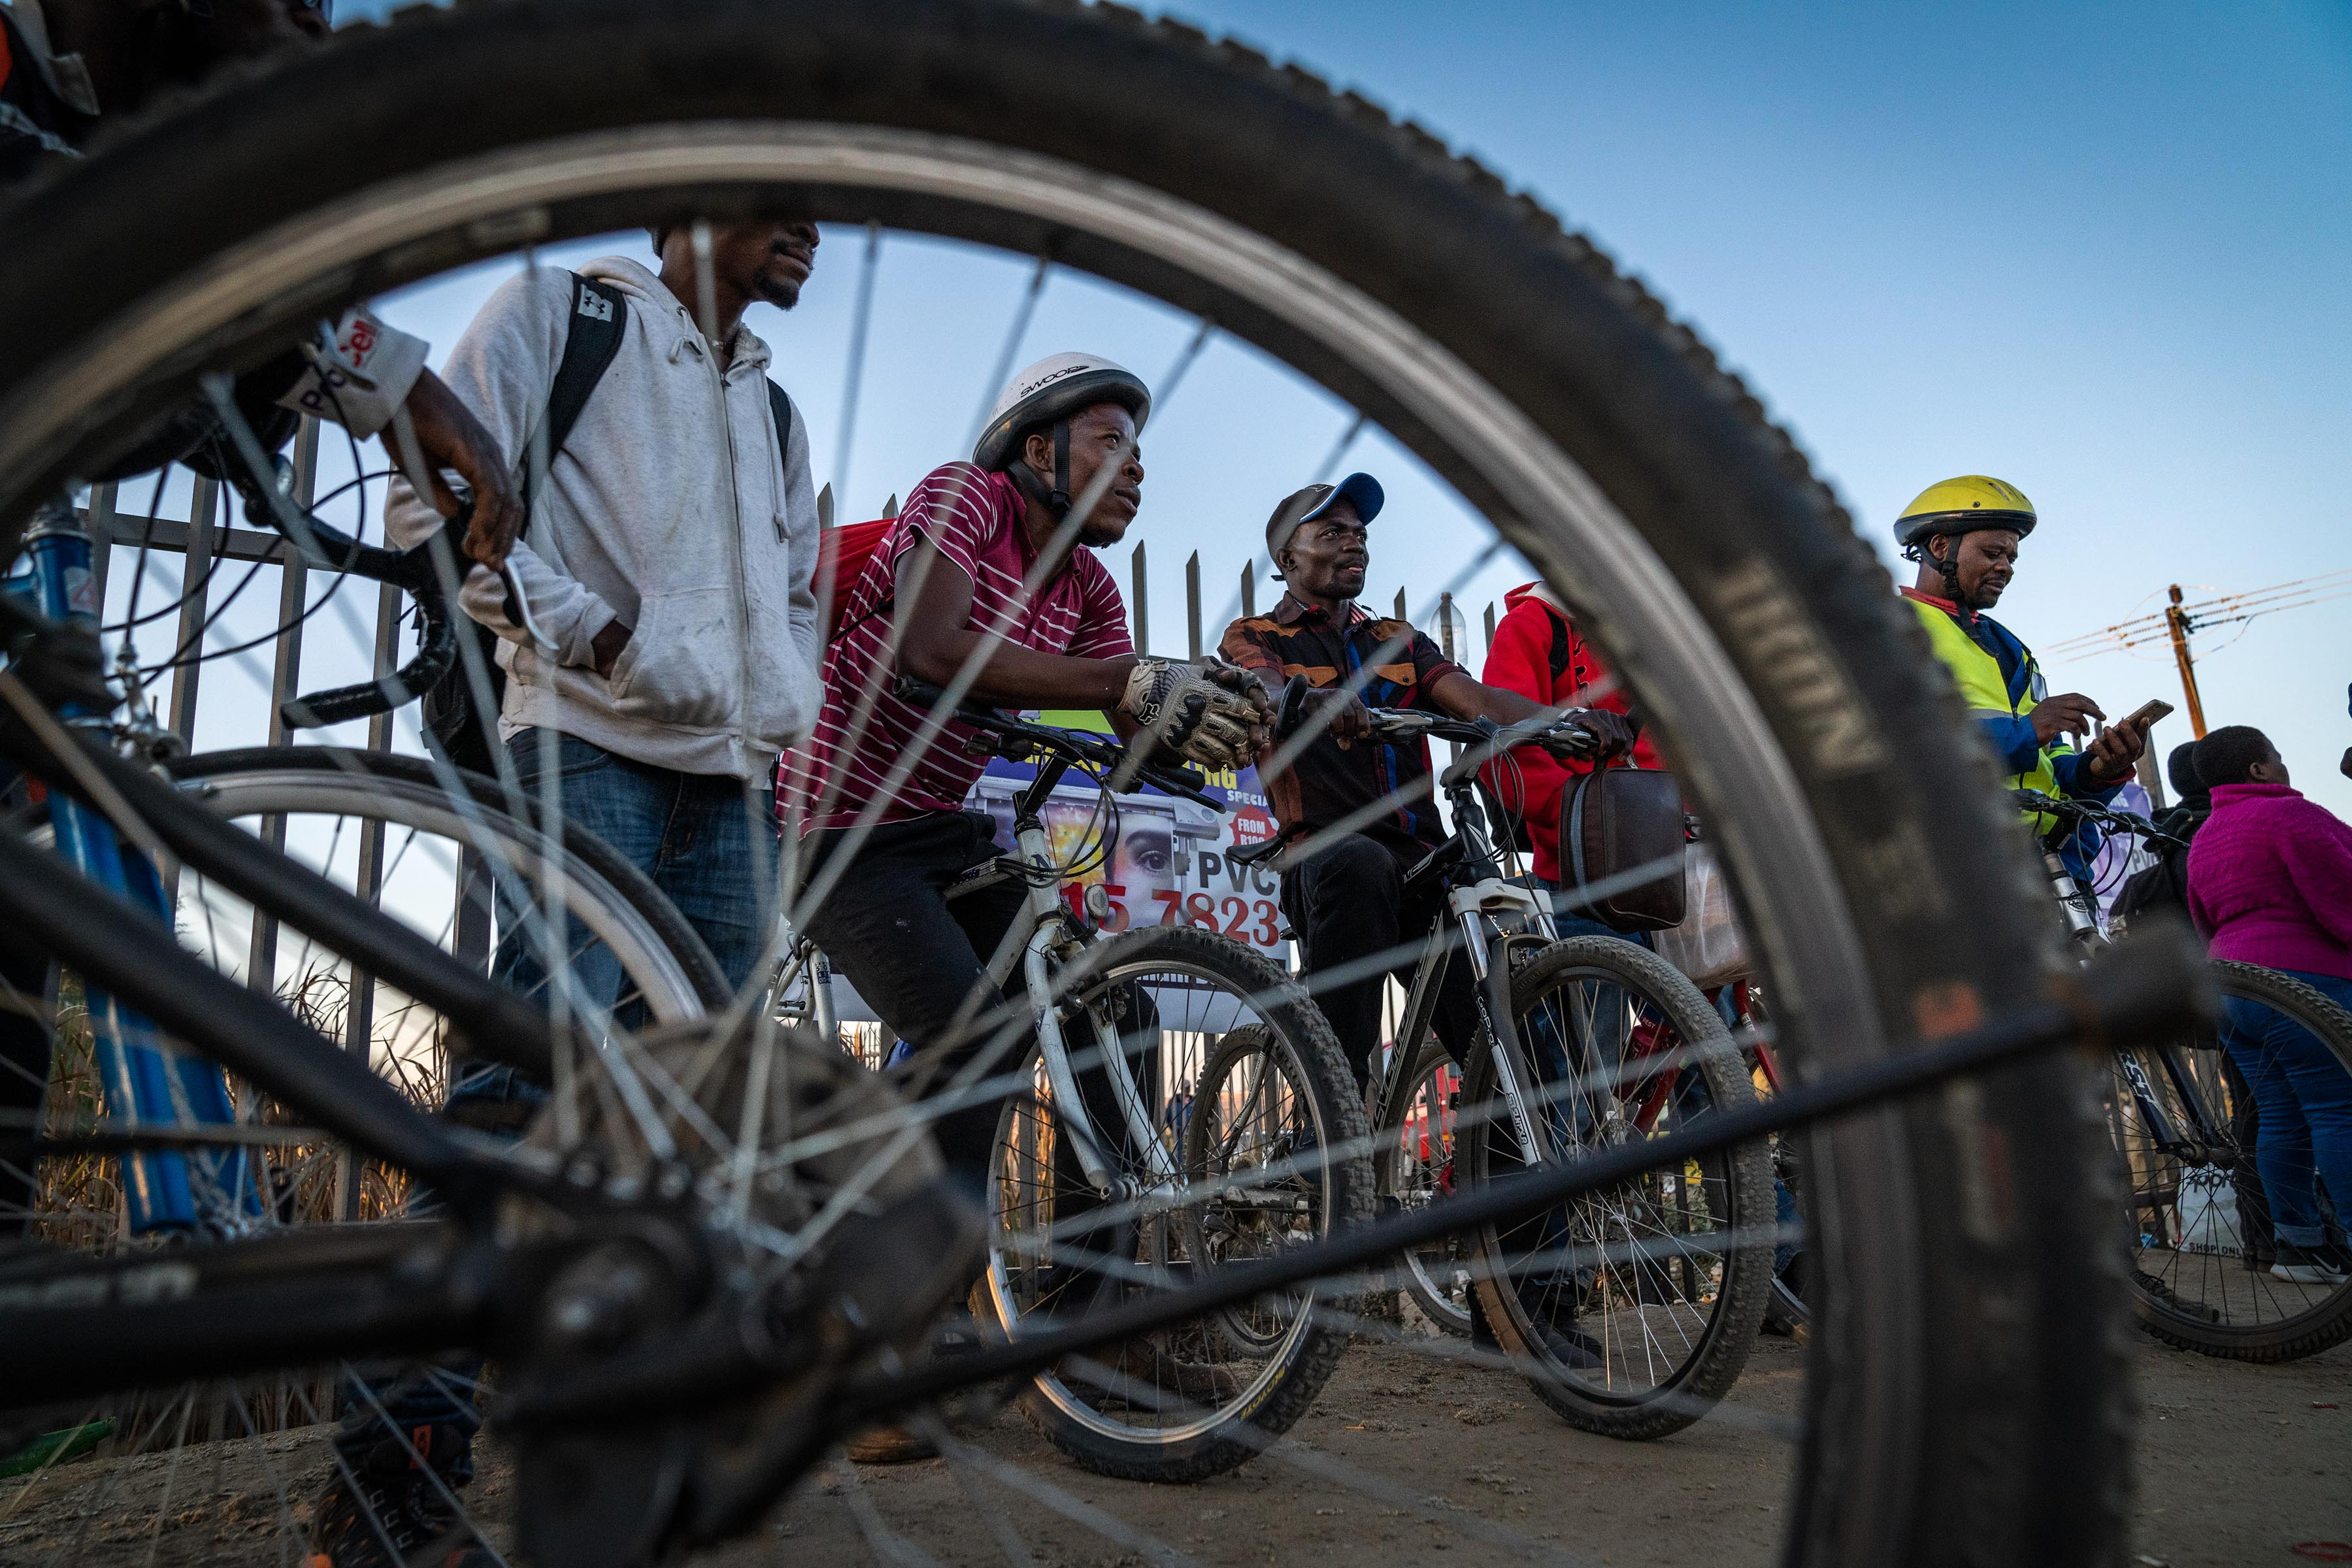 27 June 2019: Cycling to and from work is a common choice made by many workers from Diepsloot who say that they save about R1 500 per month on transport costs.